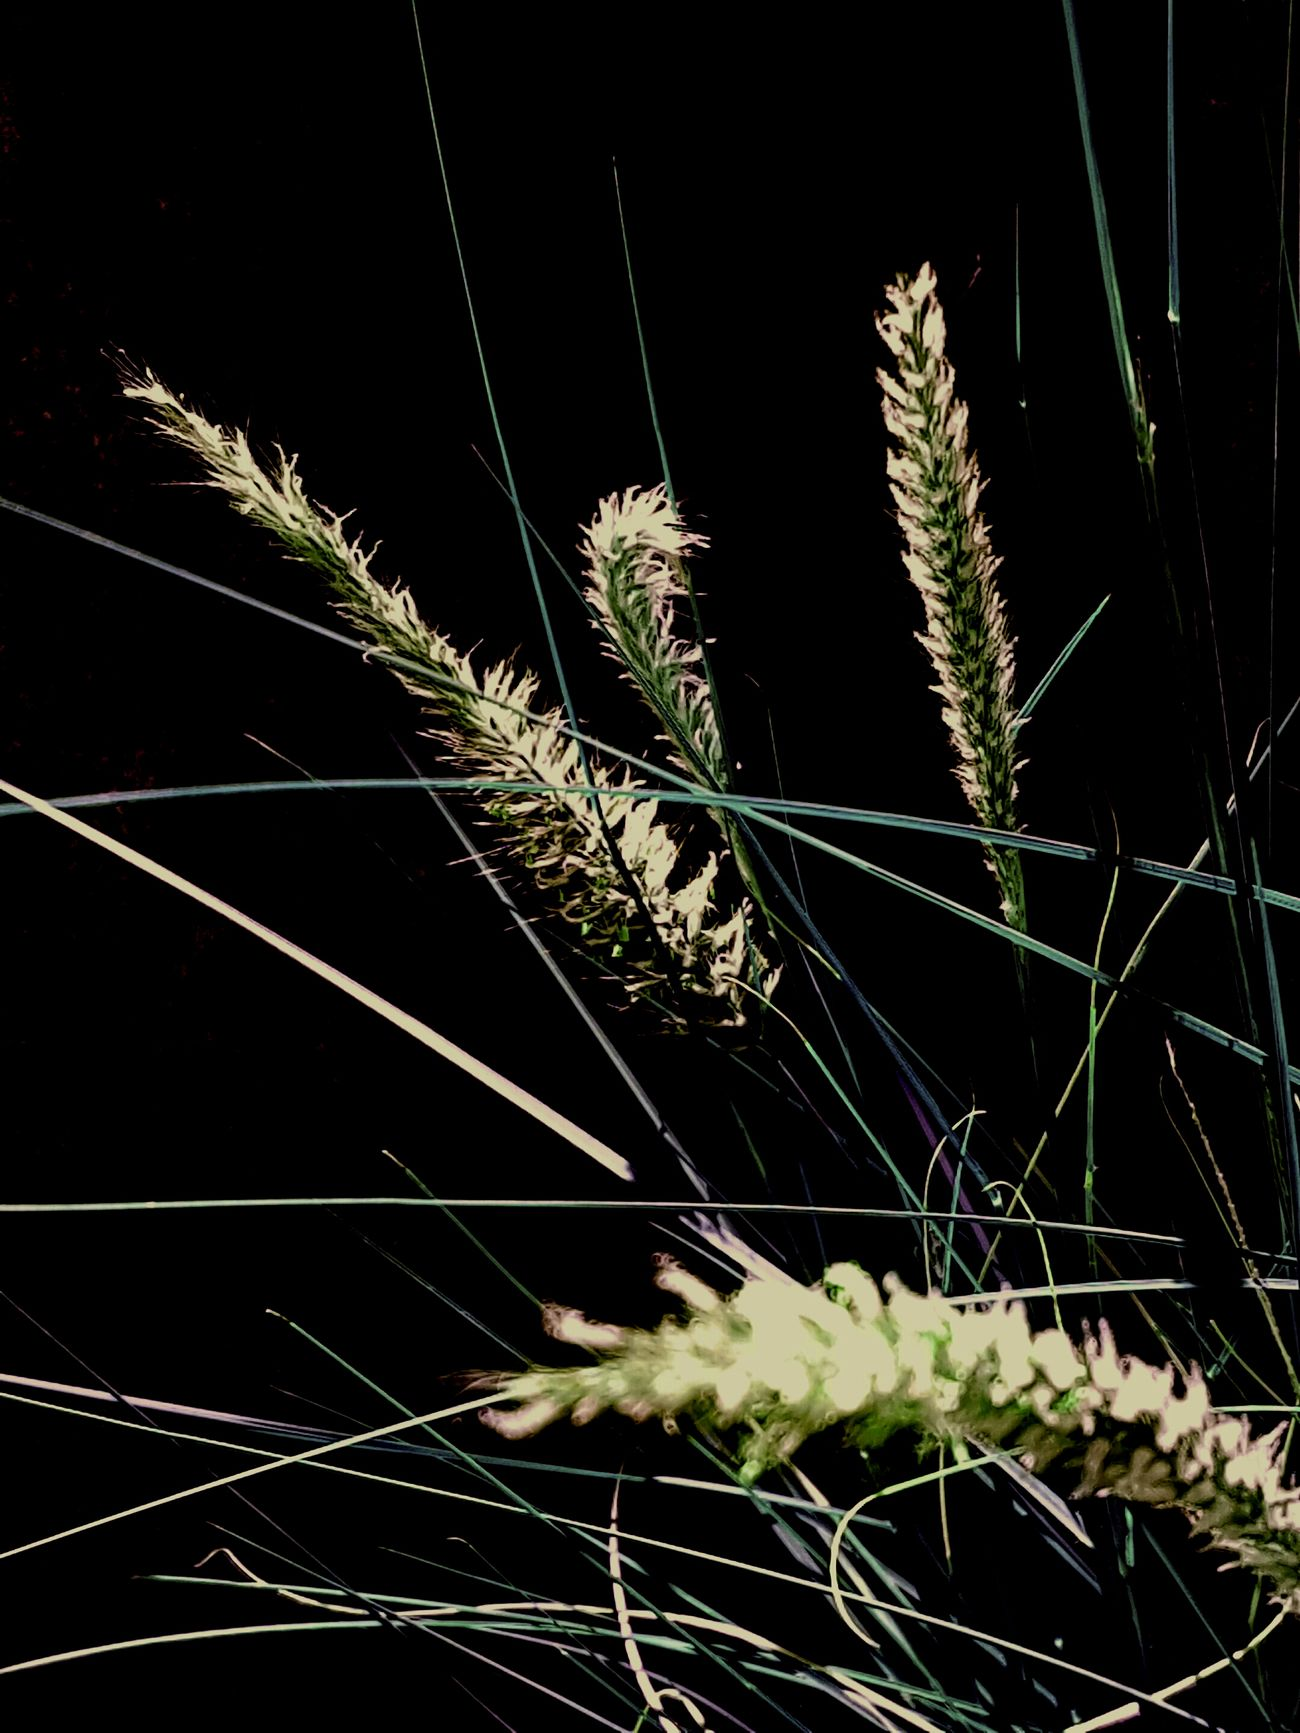 https://youtu.be/Gi_m-HIiwww🎶 Beauty In Nature Nature Backgrounds Bush Reeds Night Macro Still Life Studio Shot First Eyeem Photo Close Up Minimalism Black Background Dark Photography EyeEm Best Shots Darkness And Beauty Flower Leaves Simplicity Dark Background Australia Outdoors My Unique Style Light And Shadow